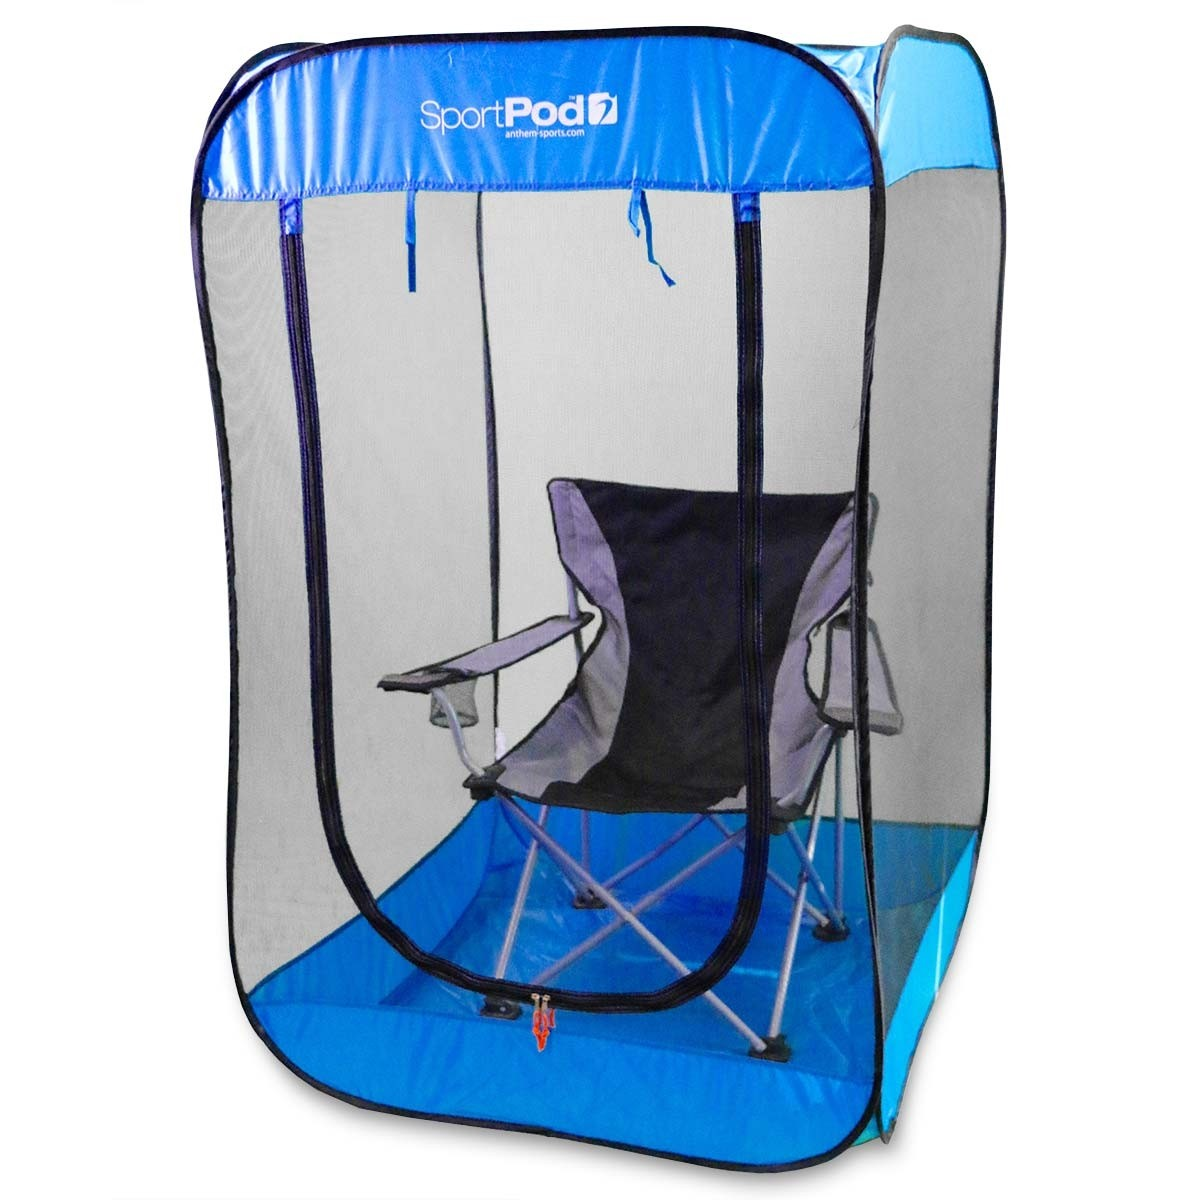 chair under cover zebra bedroom bugpod undercover sportpod pop up insect screen tent